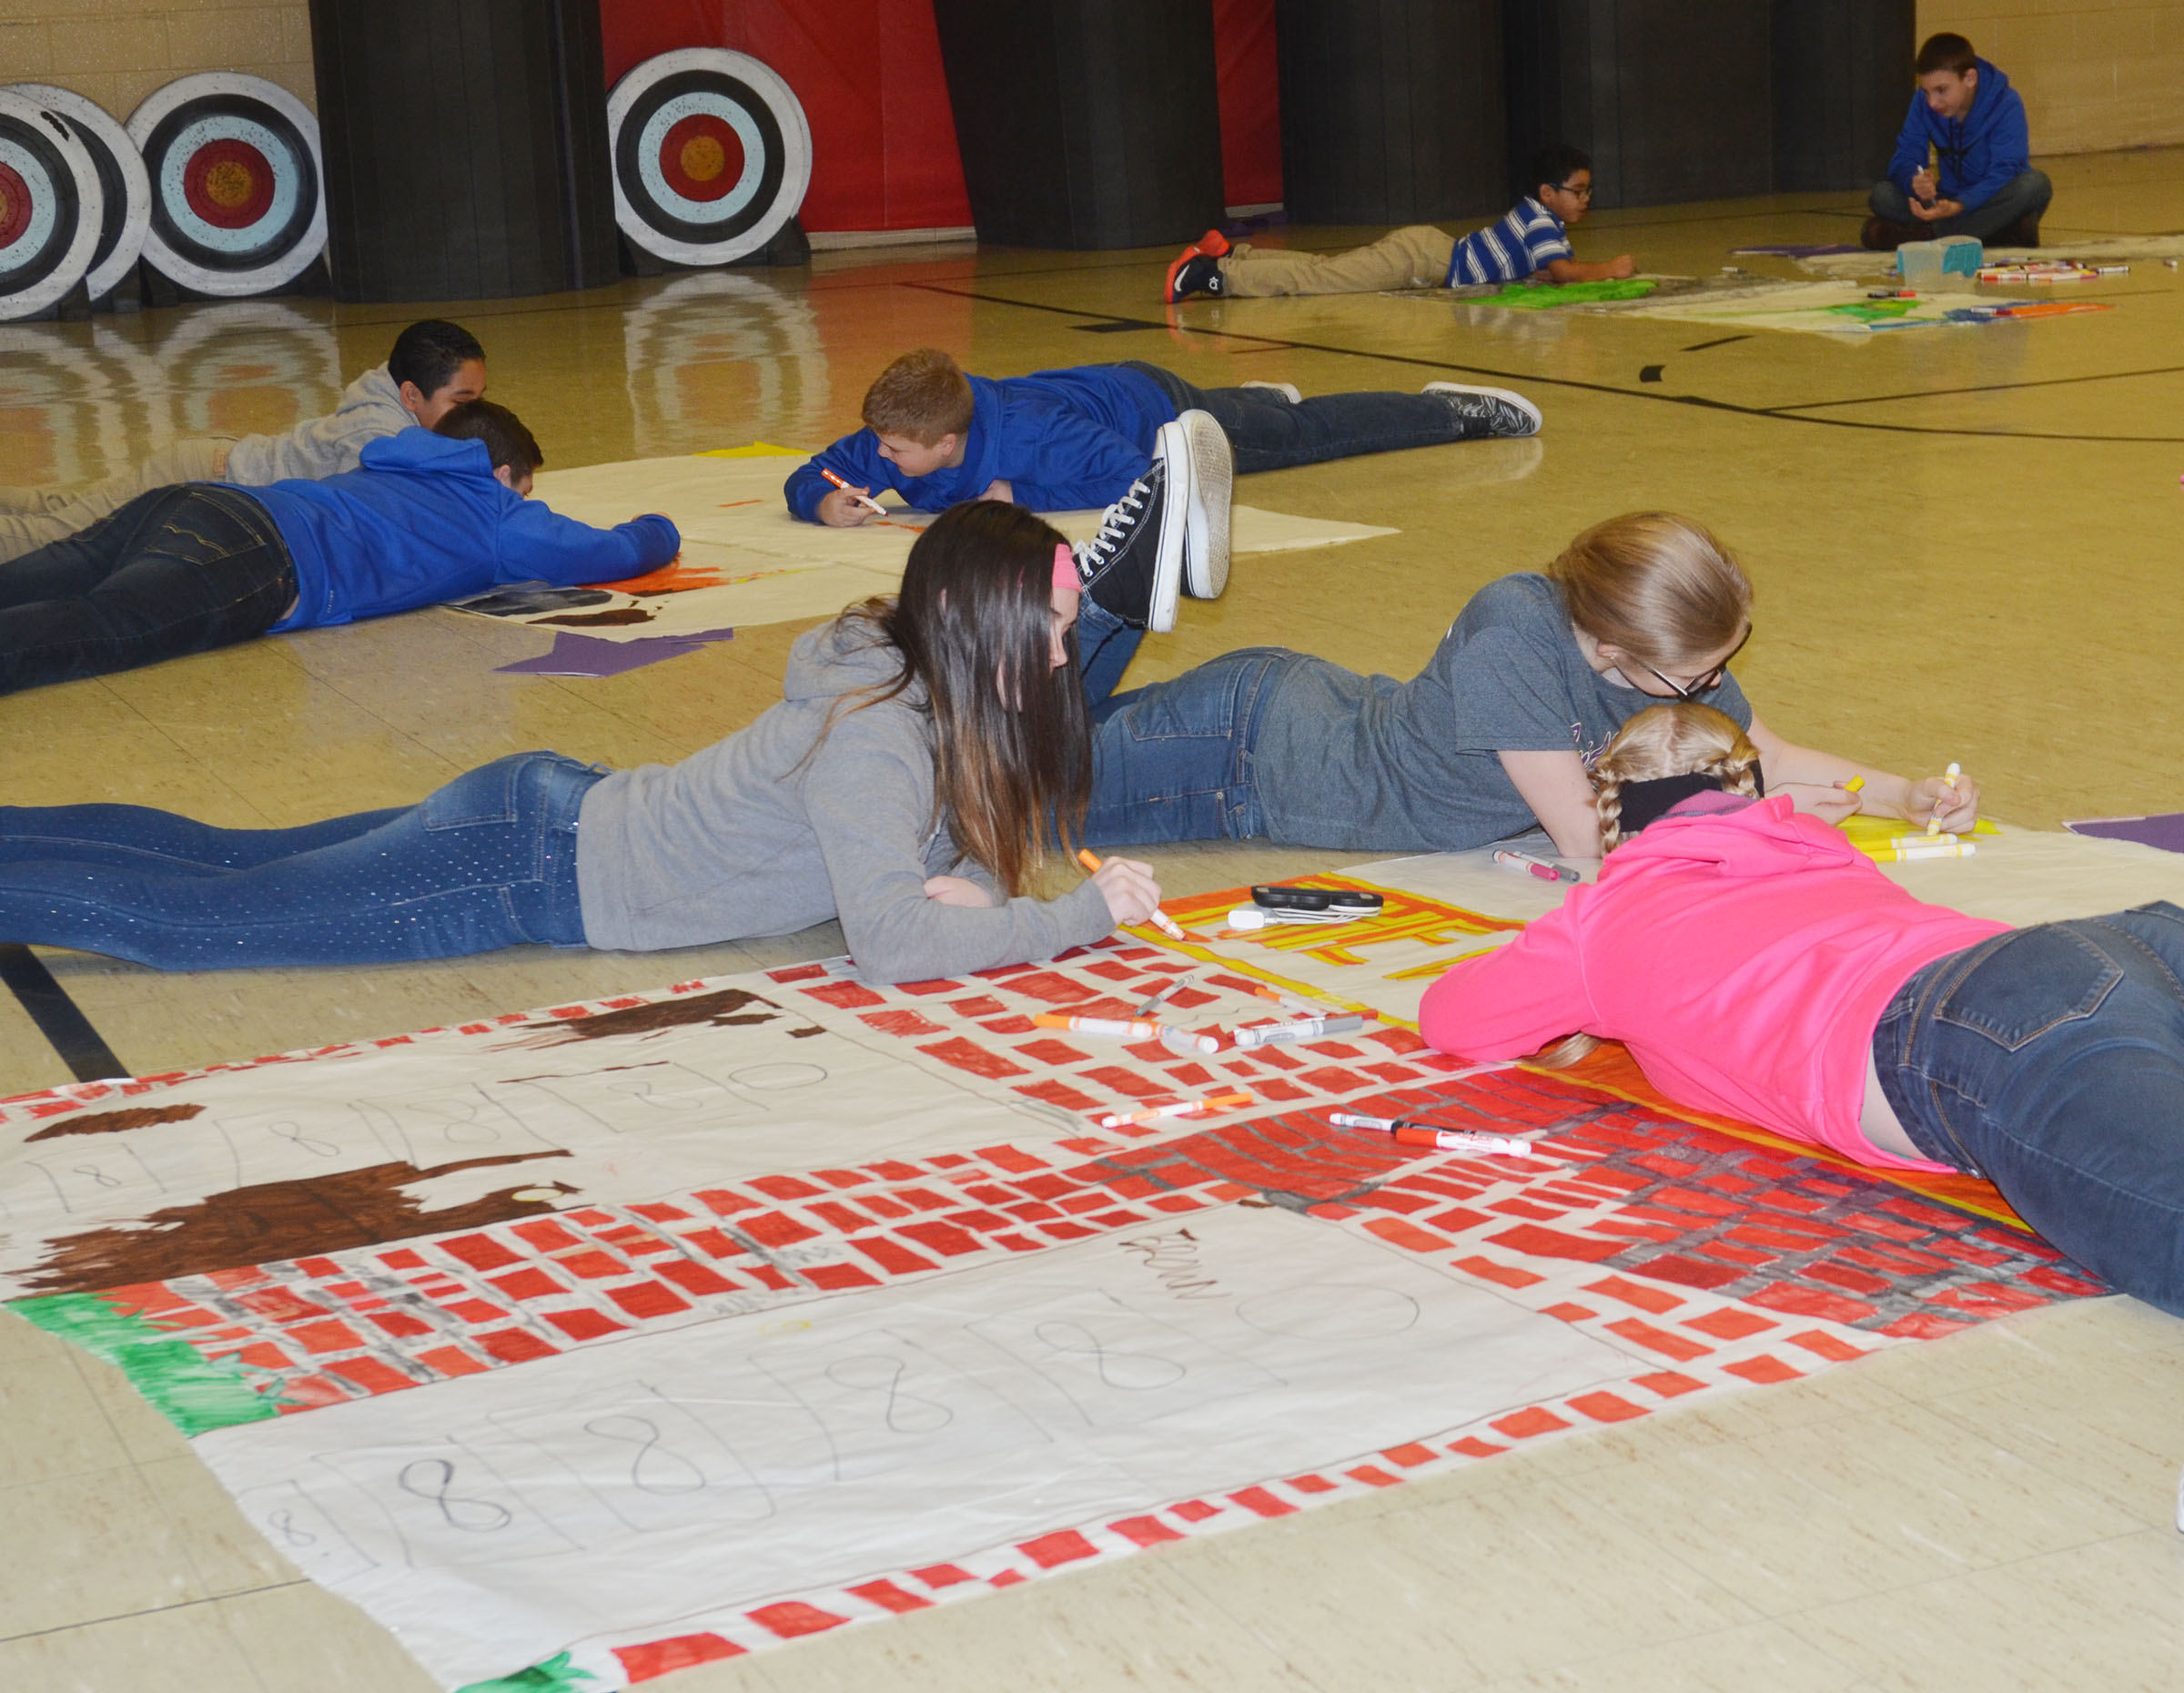 CMS students work in groups to draw and color scenes from their books.